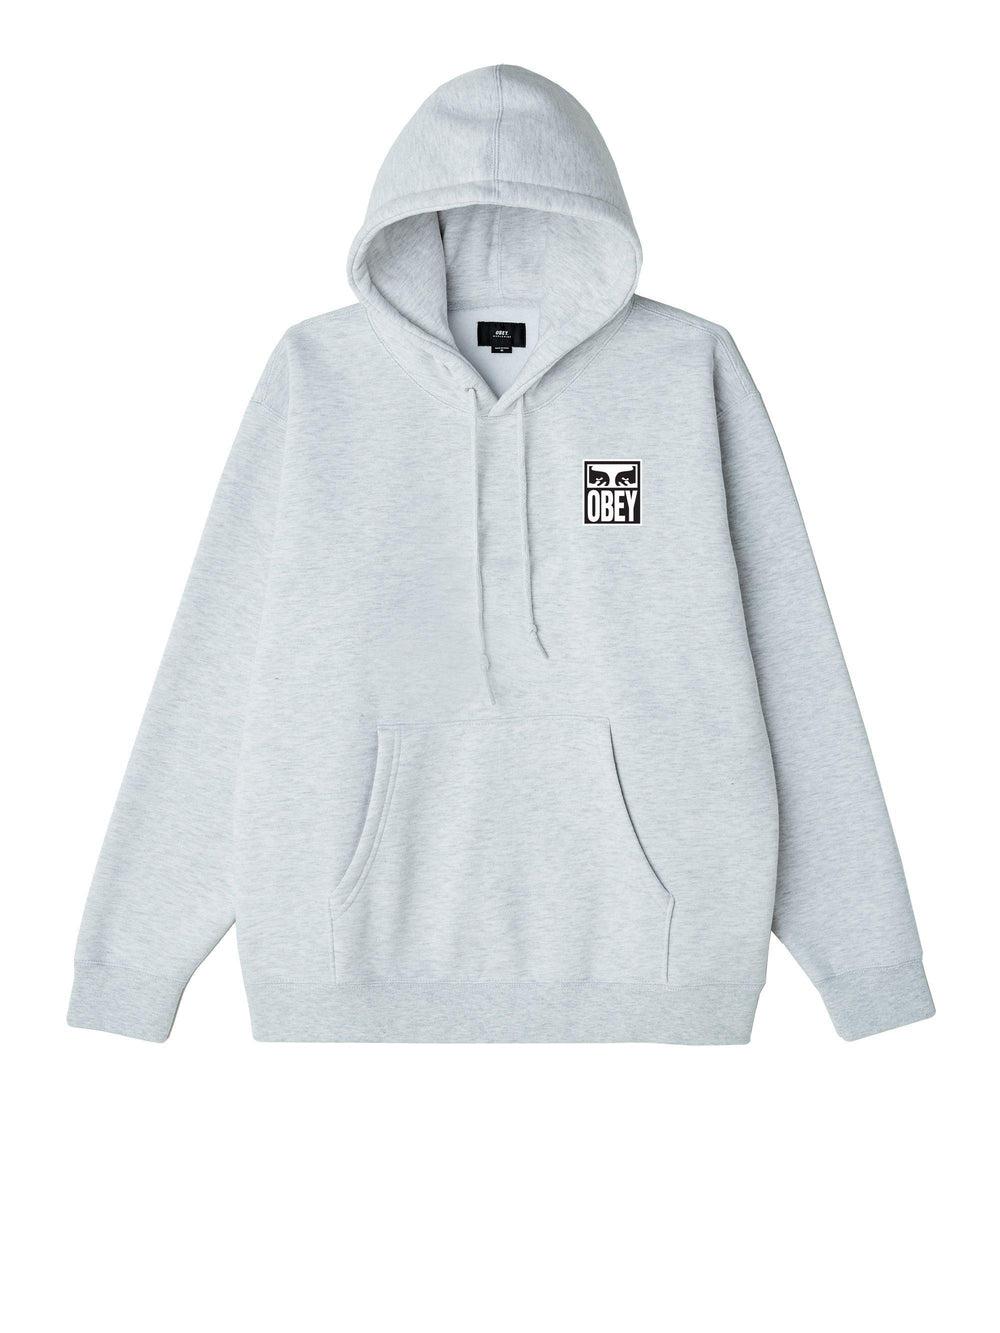 Obey Worldwide Eyes Icon Hoodie in Grey-The Trendy Walrus